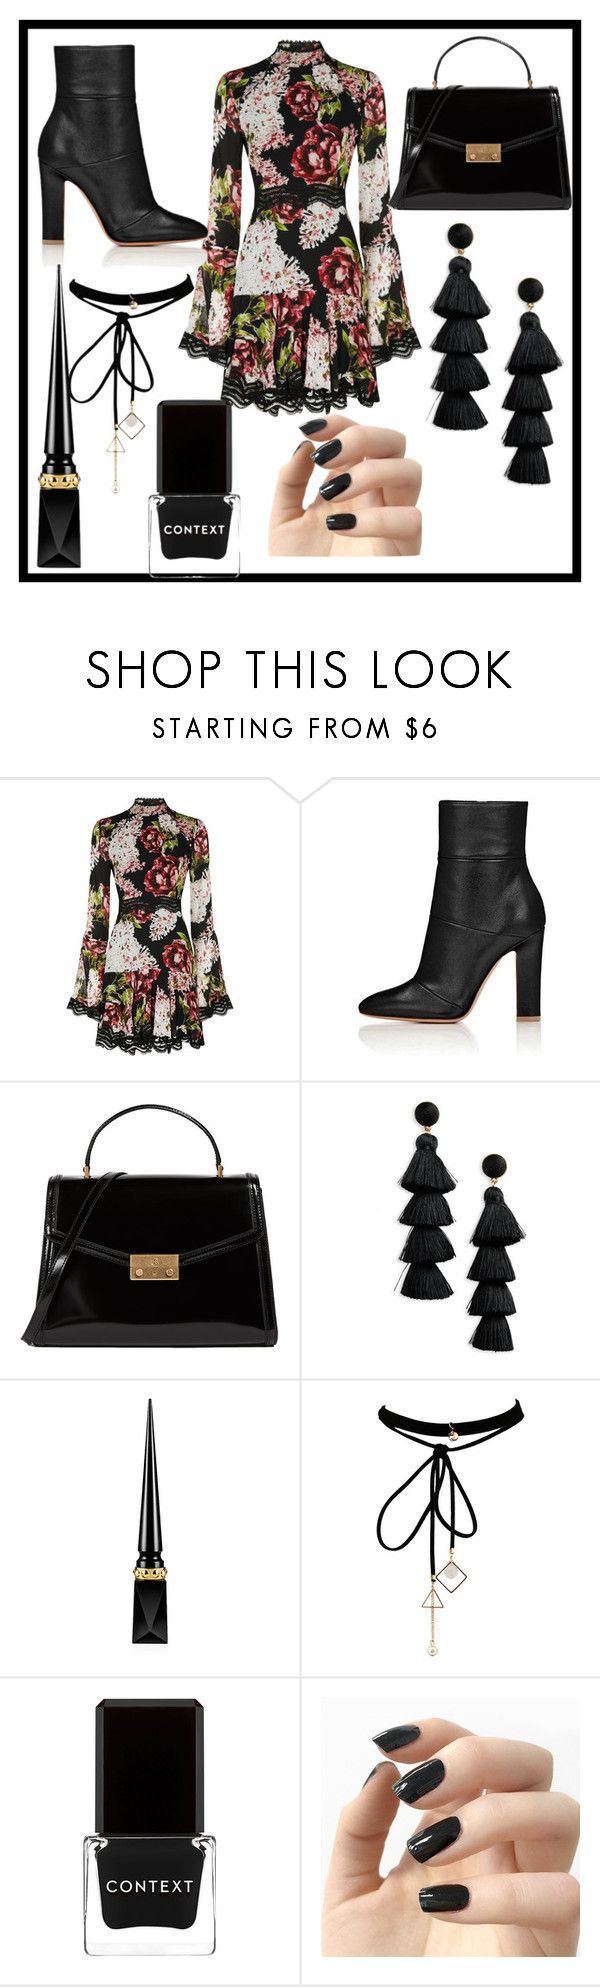 """fall outfit look"" by fashionqueen886 ❤ liked on Polyvore featuring Nicholas, Tory Burch, BaubleBar, Christian Louboutin, WithChic, Context and Incoco"